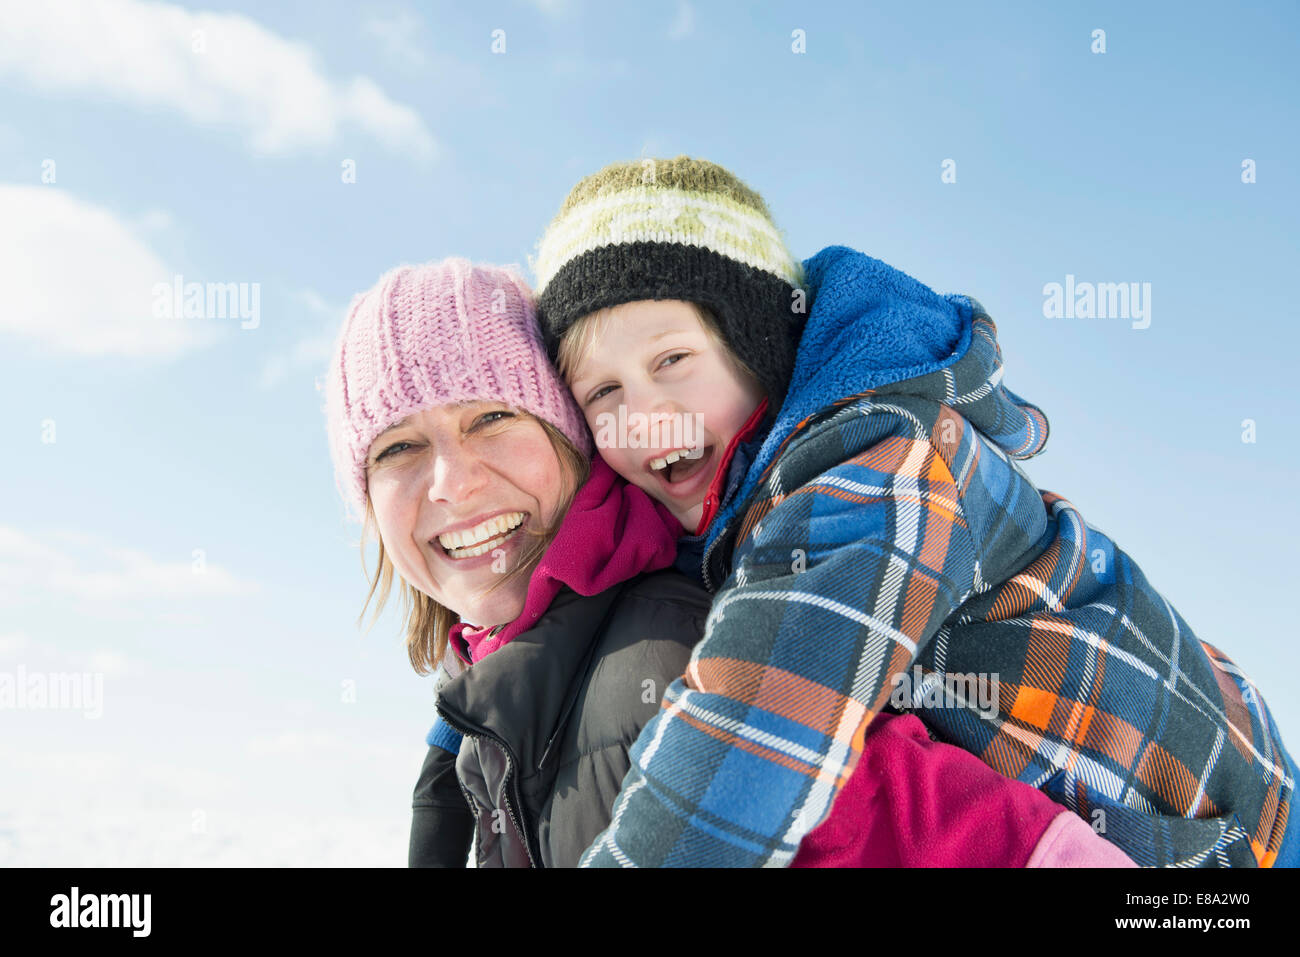 Mother giving piggy back ride to son, smiling, portrait, Bavaria, Germany - Stock Image